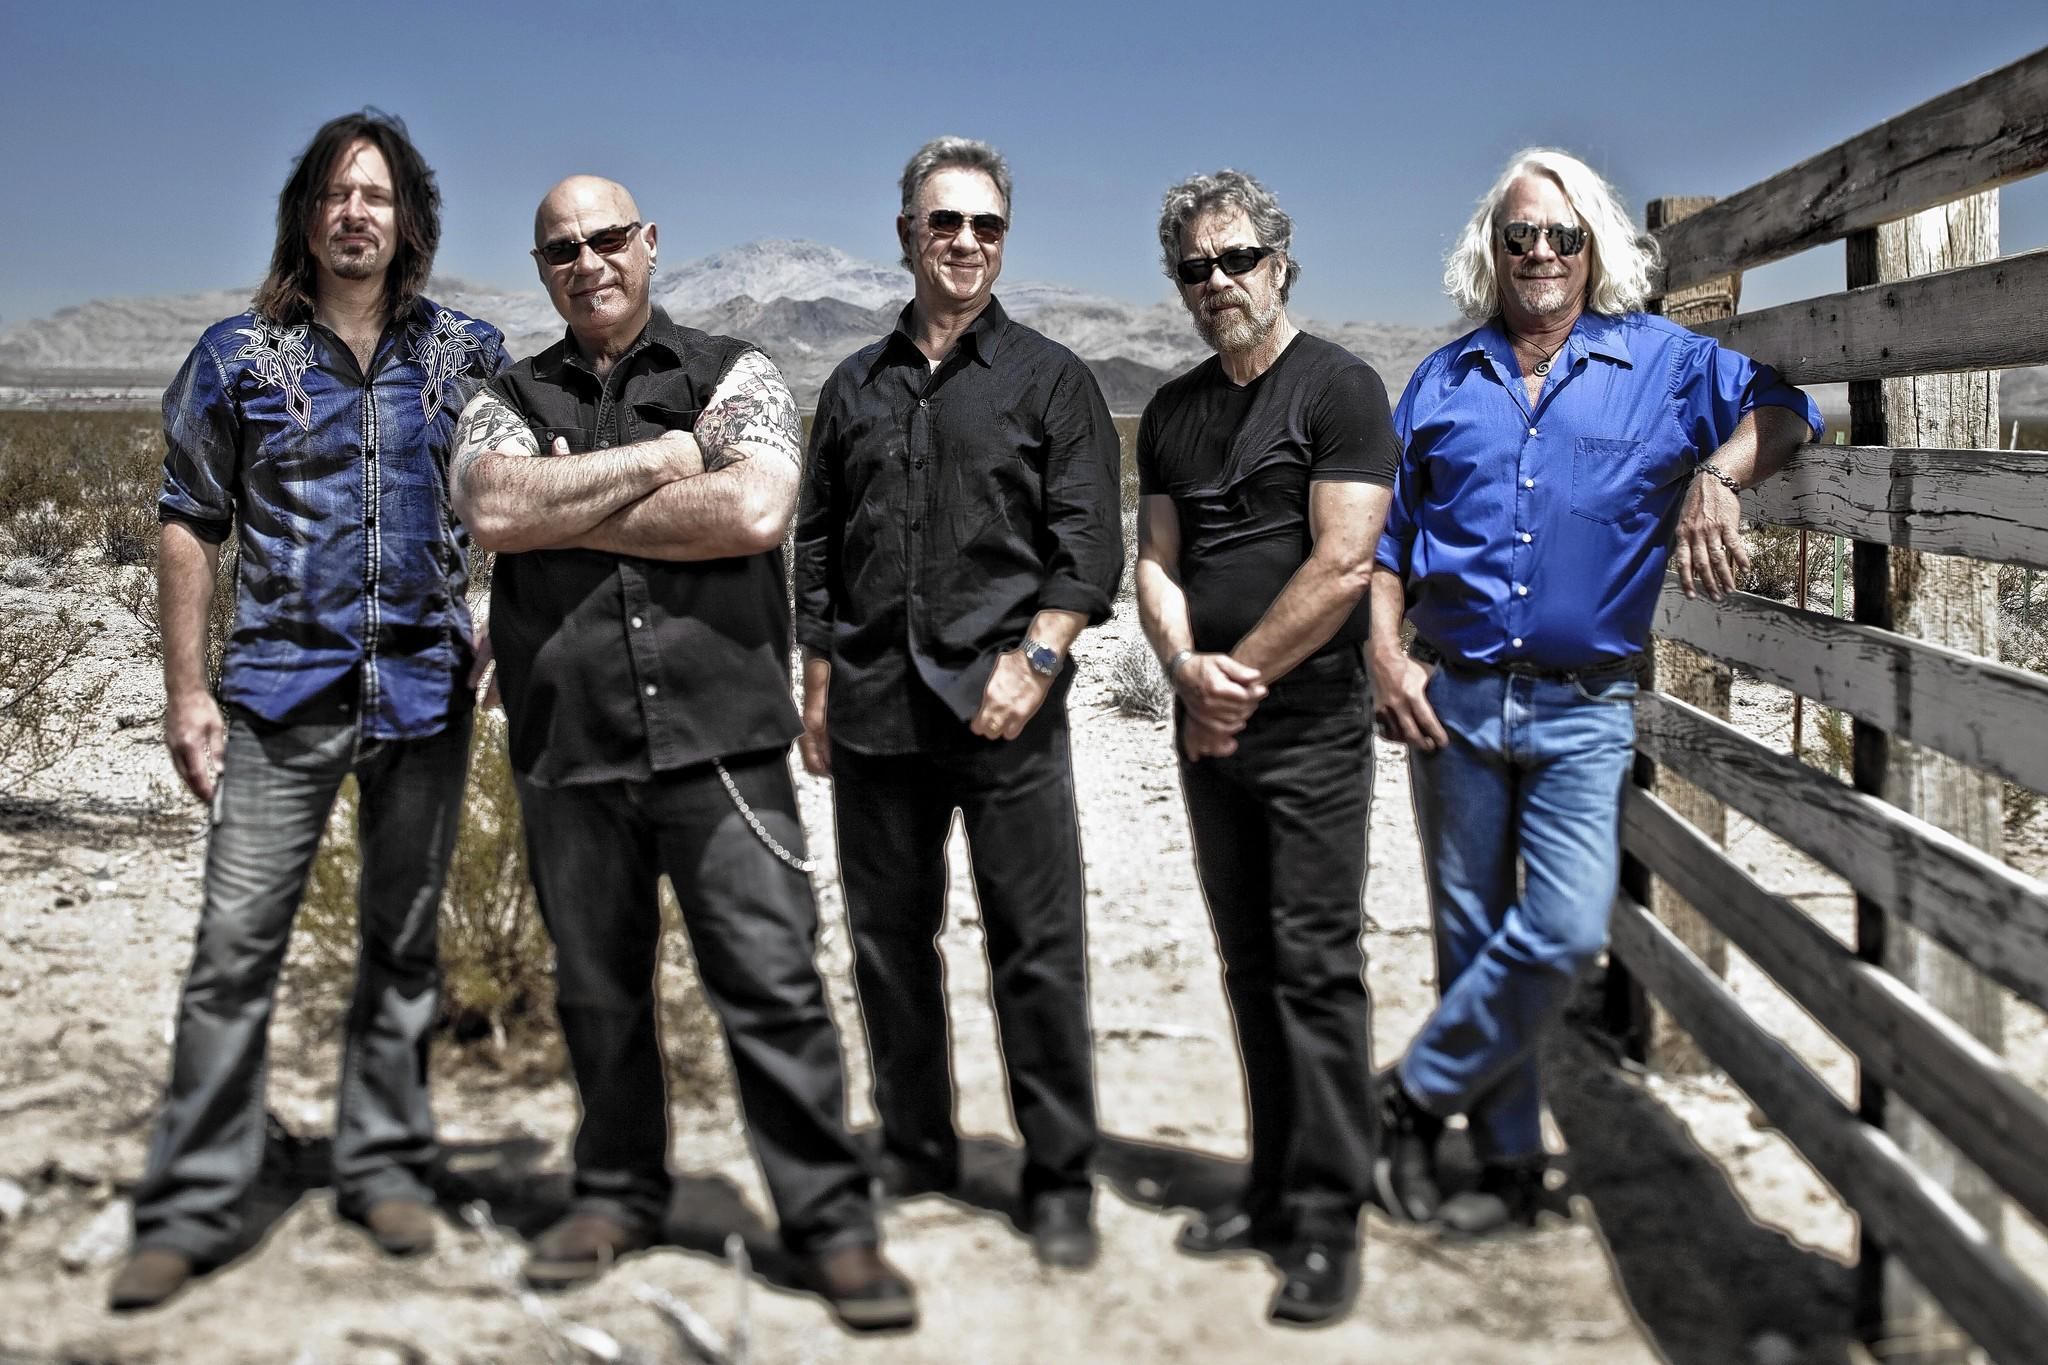 Creedence Clearwater Revisited will play at the American Music Festival in Virginia Beach. Bassist Stu Cook and drummer Doug Clifford are third and fourth from the left.